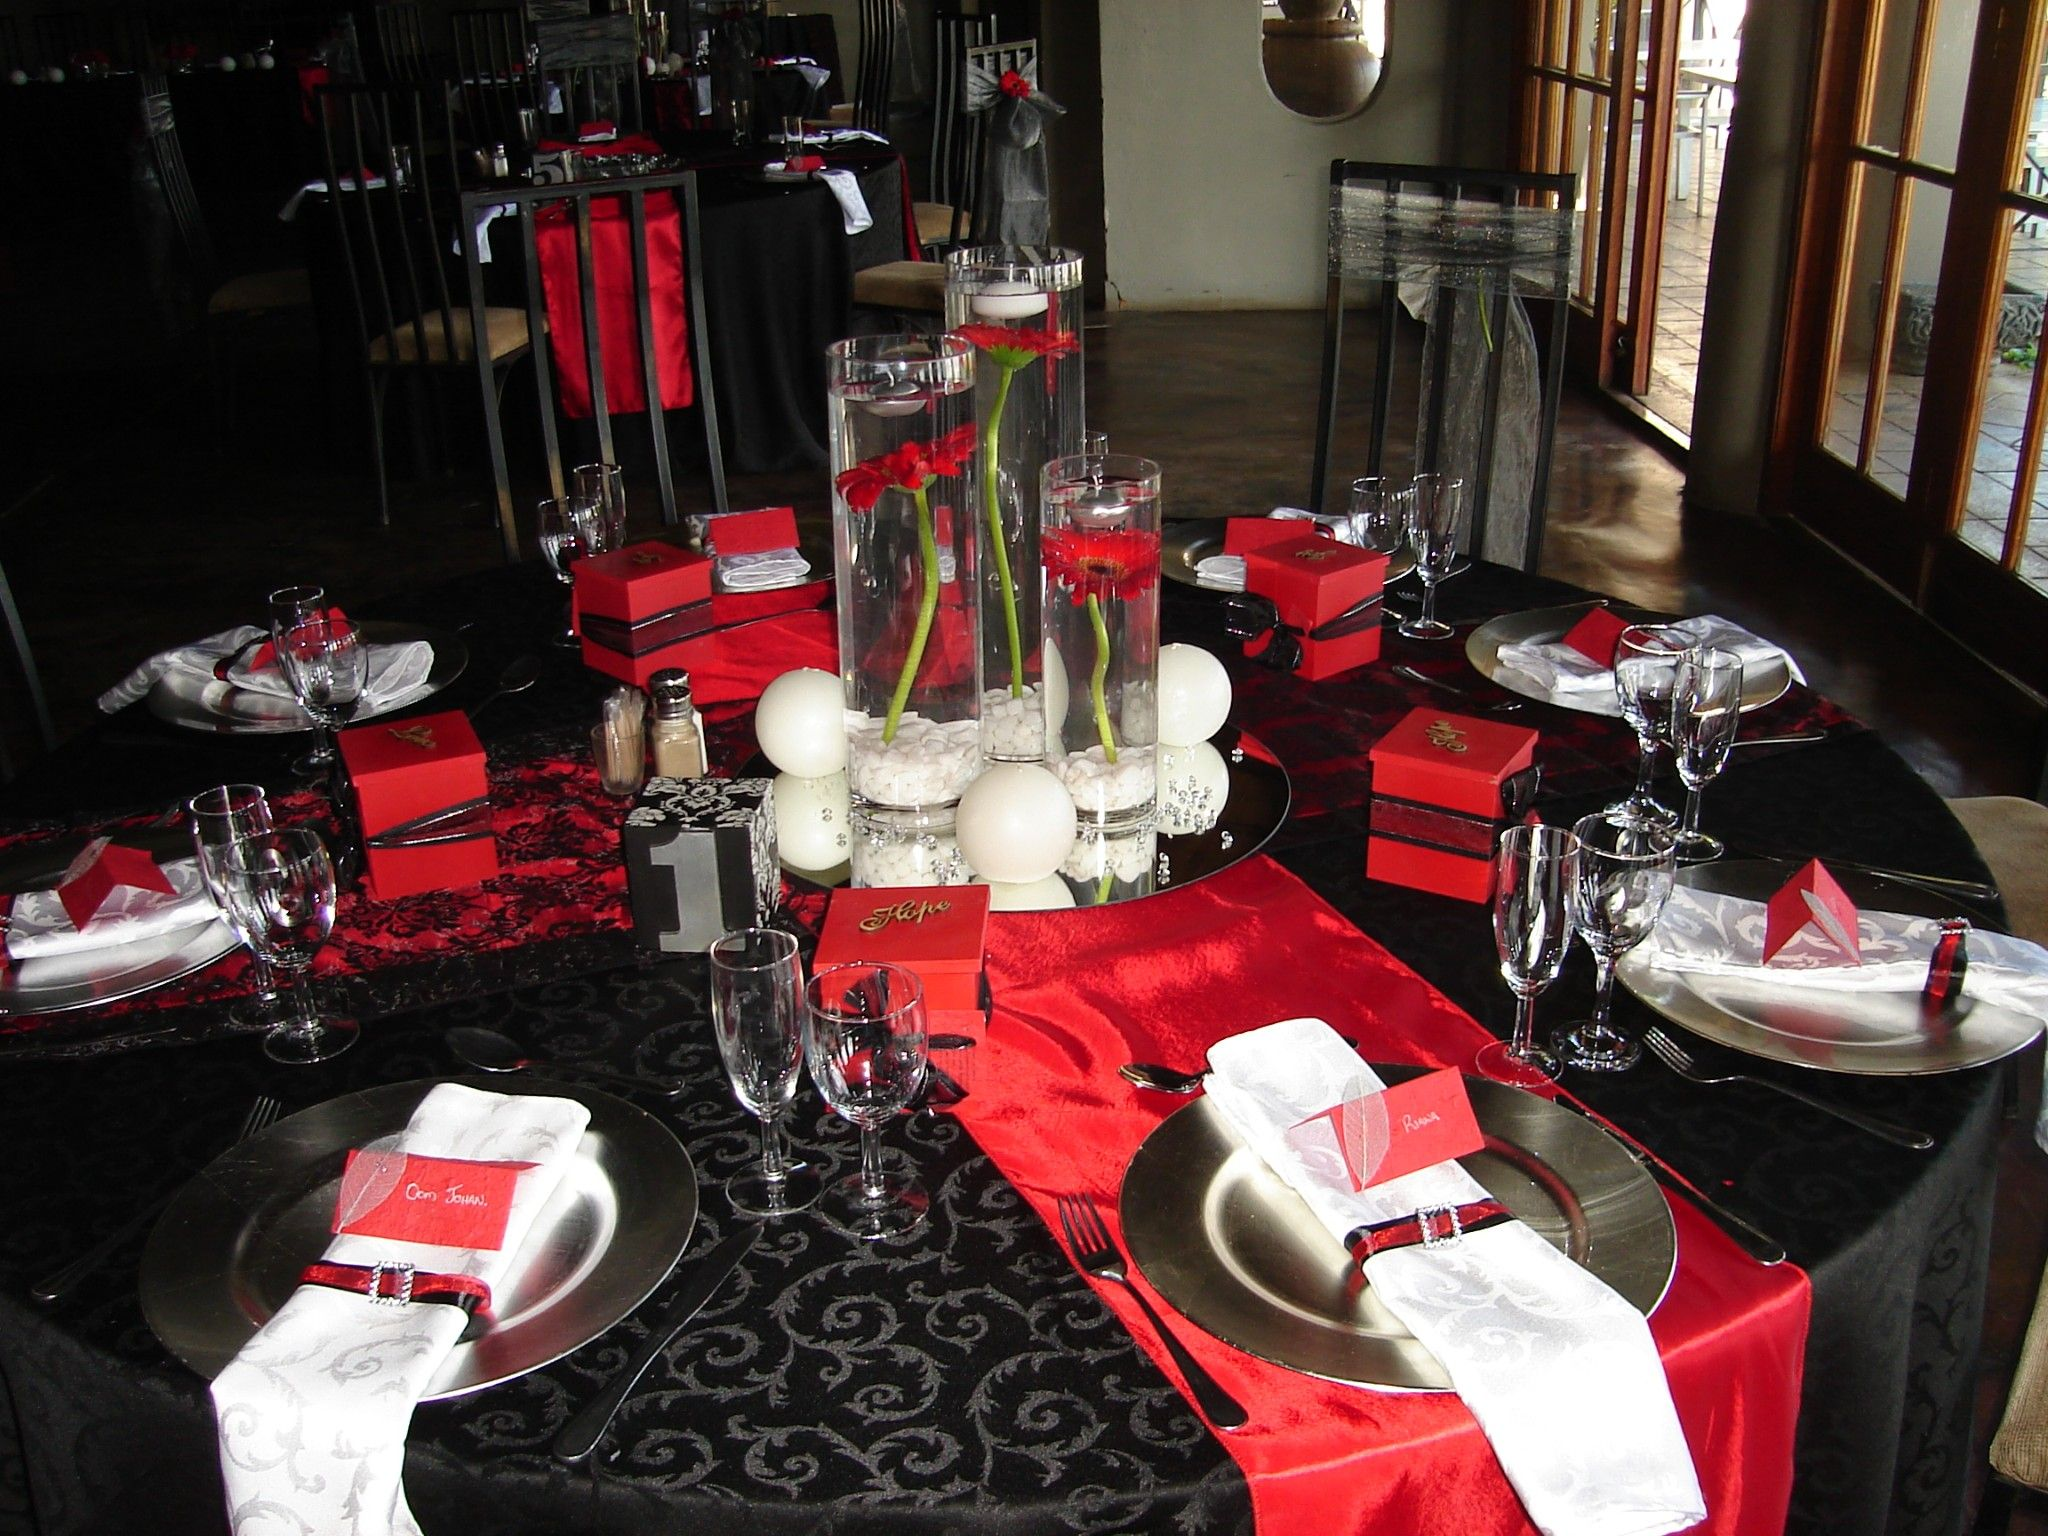 black, red, silver wedding | Black Red White & Silver Wedding ...